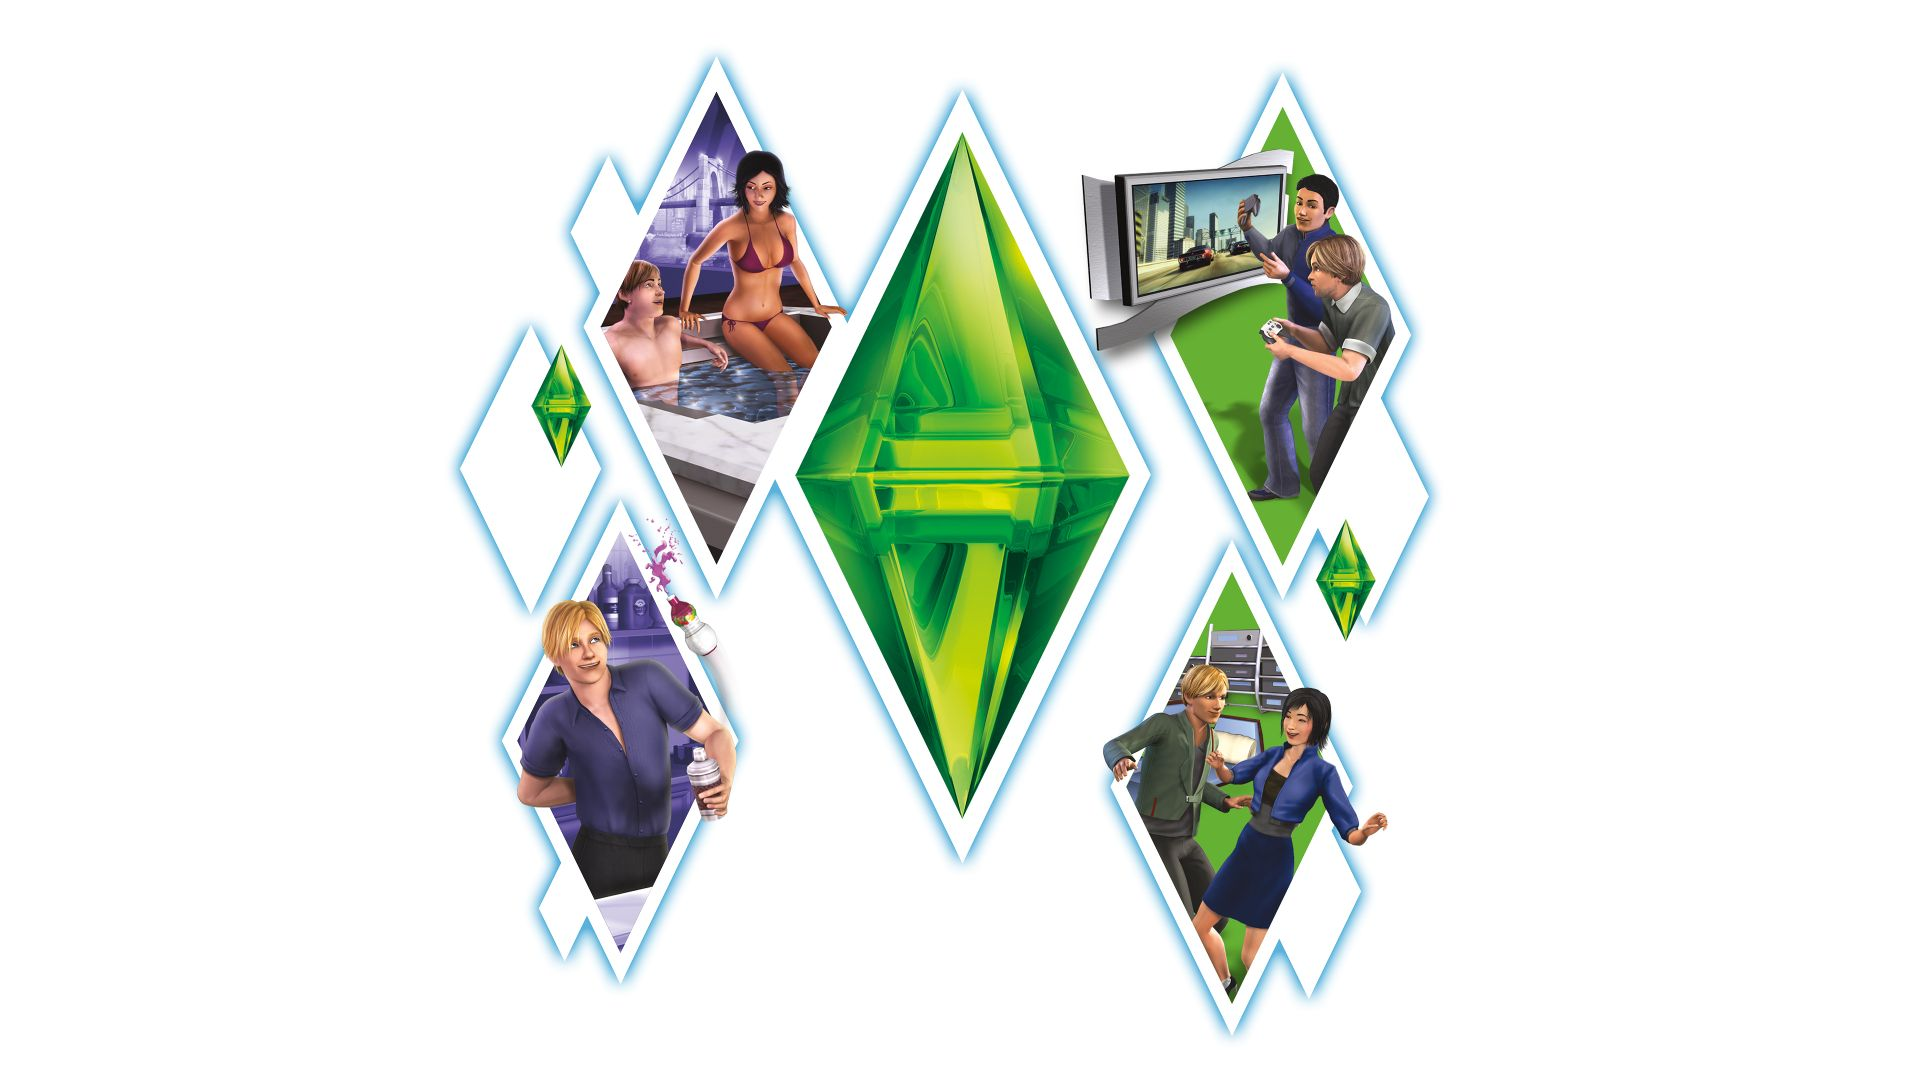 How to install the sims 3 starter pack on pc - Crude Humor